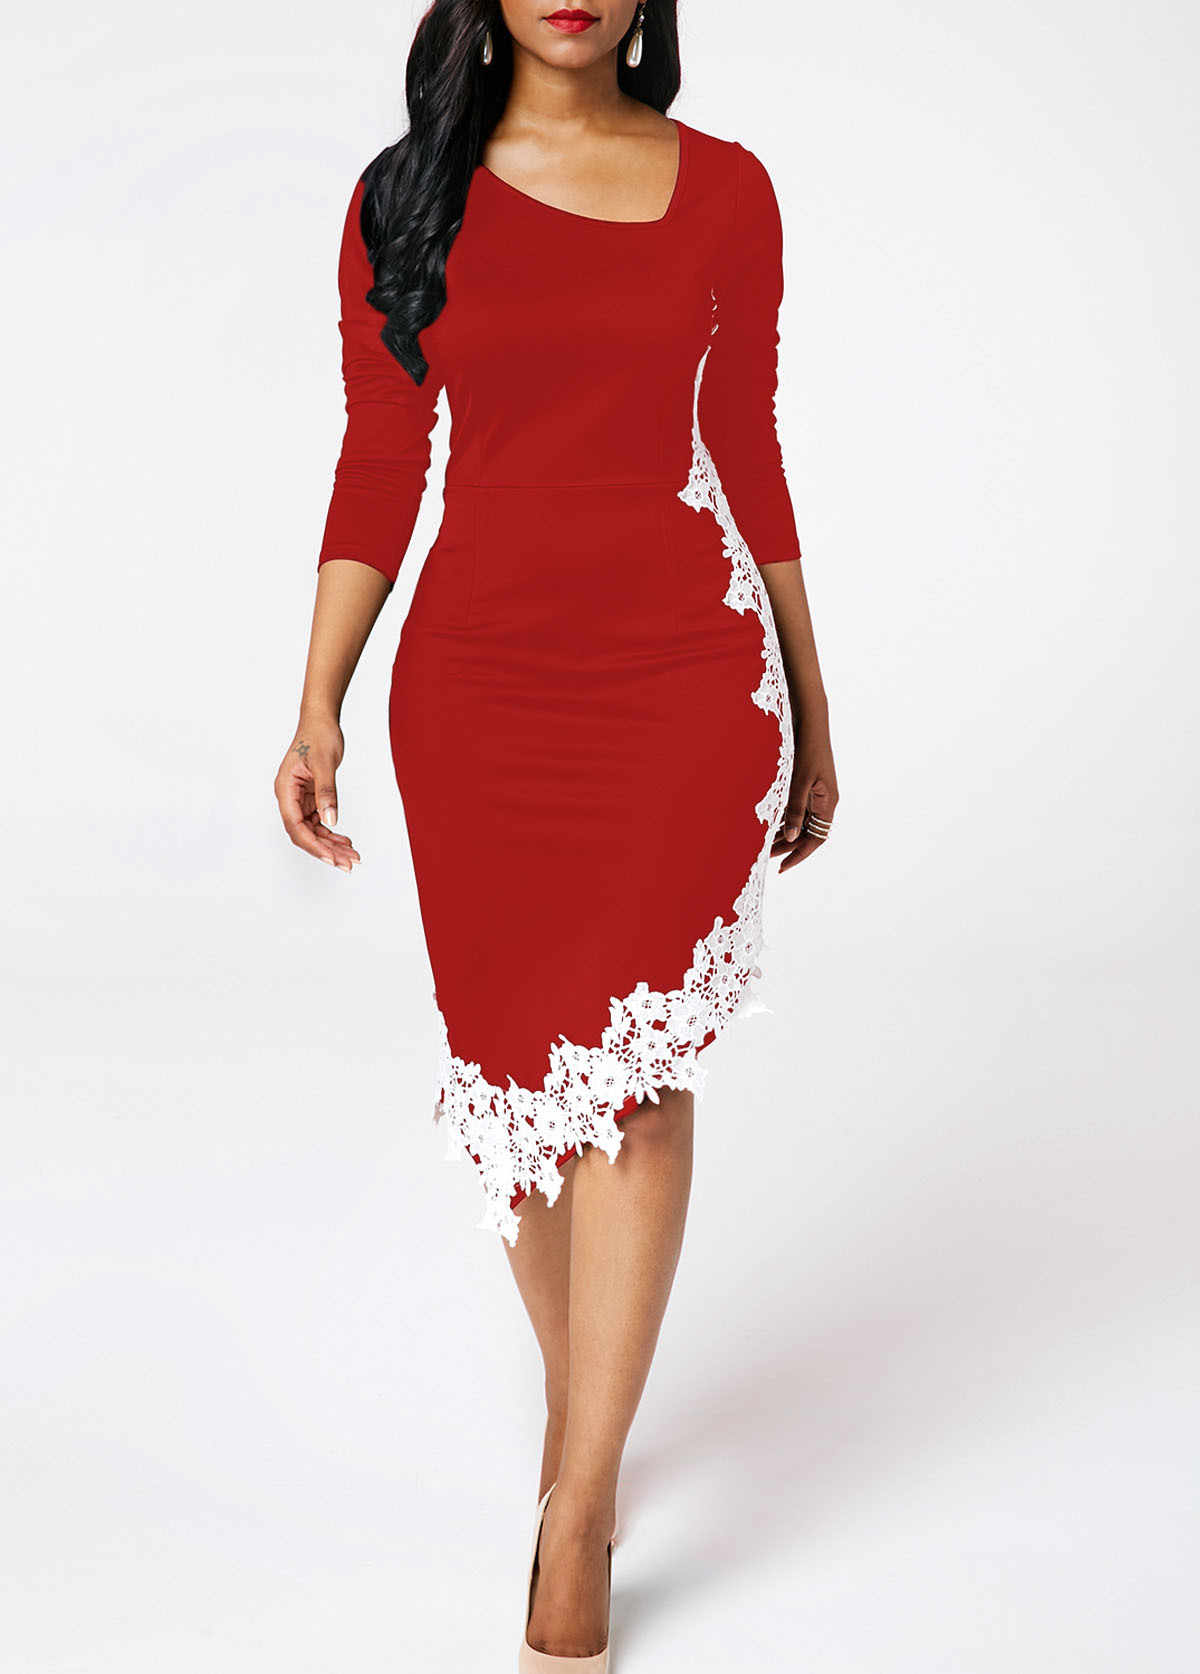 Slim Fit Dress Women Bodycon Lace Knee Length Ol Plus Size Female Dresses Casual Long Sleeve Sheath Club Party Dress Vestidos Dresses Aliexpress Team your fit & flare midi dress with strappy sandals for a casual sunday brunch and add in some amaze lace up ankle boots for day to evening. slim fit dress women bodycon lace knee length ol plus size female dresses casual long sleeve sheath club party dress vestidos